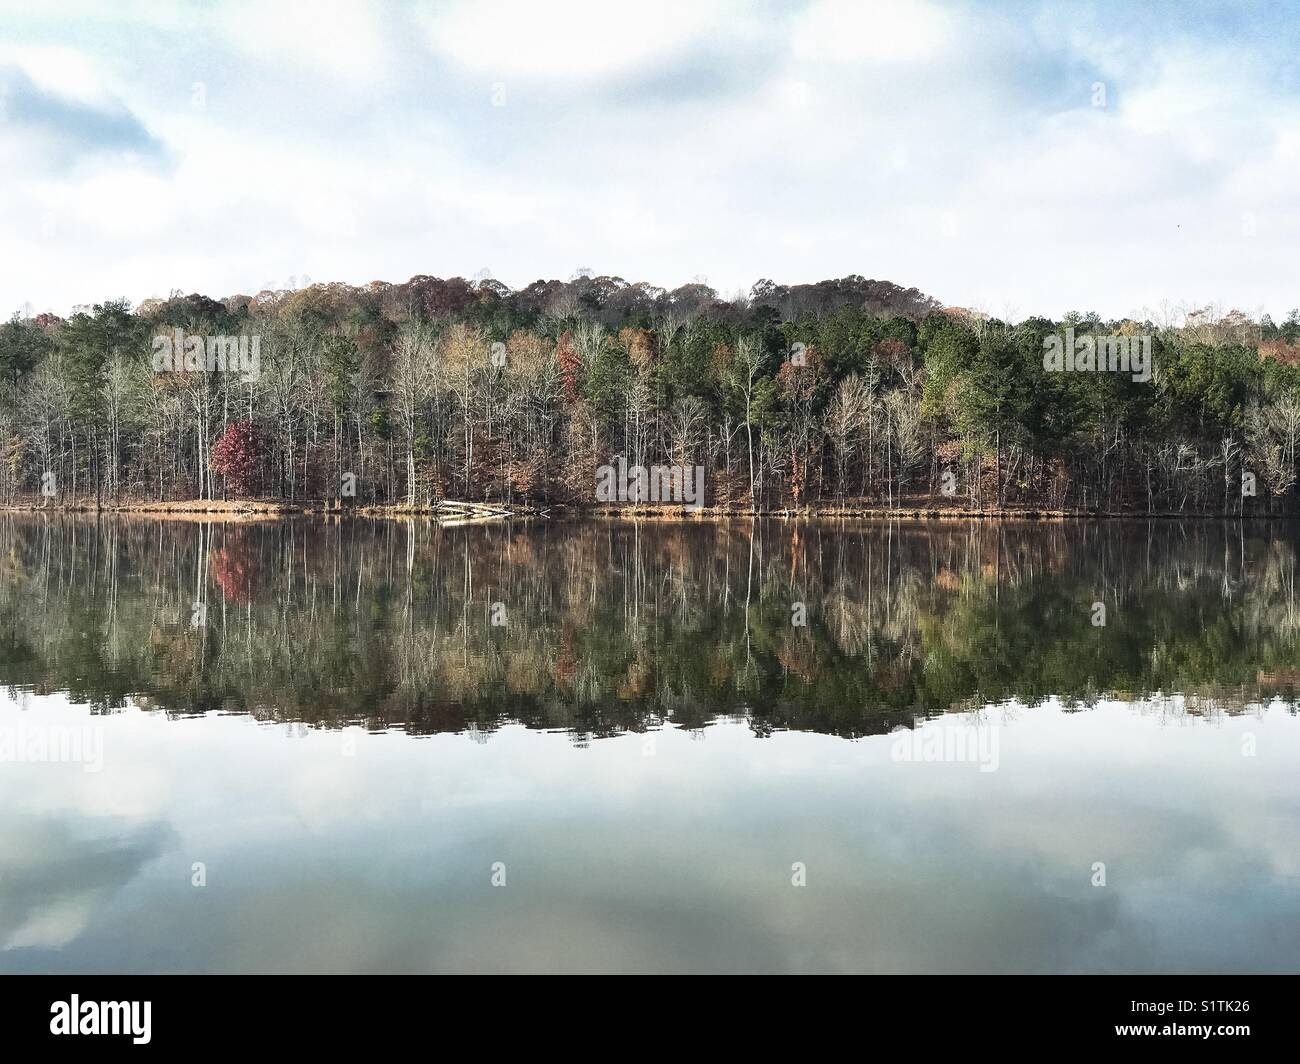 Lake McIntosh in Peachtree City. - Stock Image